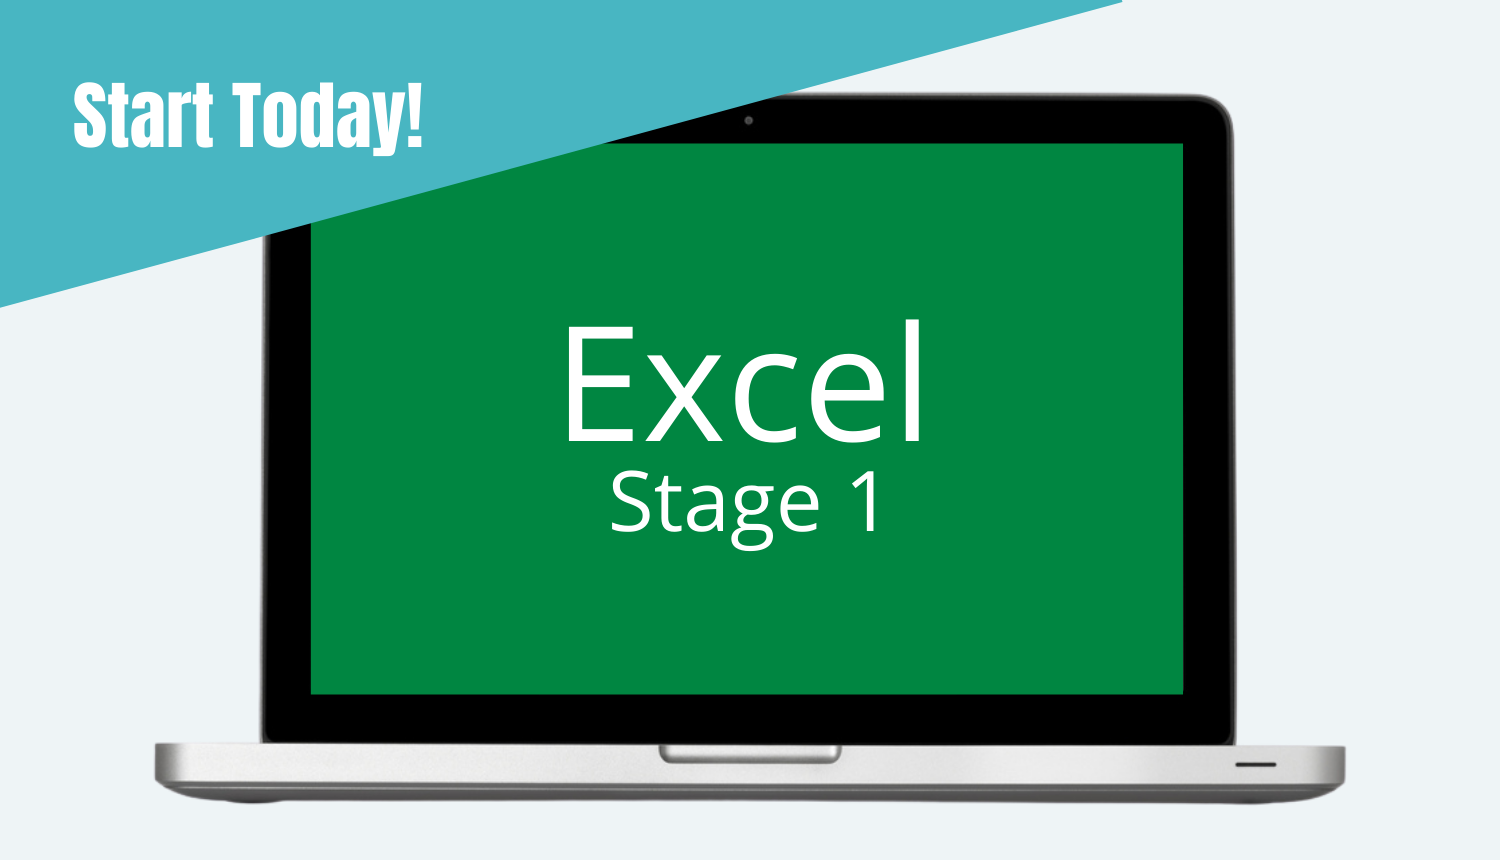 Microsoft Excel Stage 1 Online Course